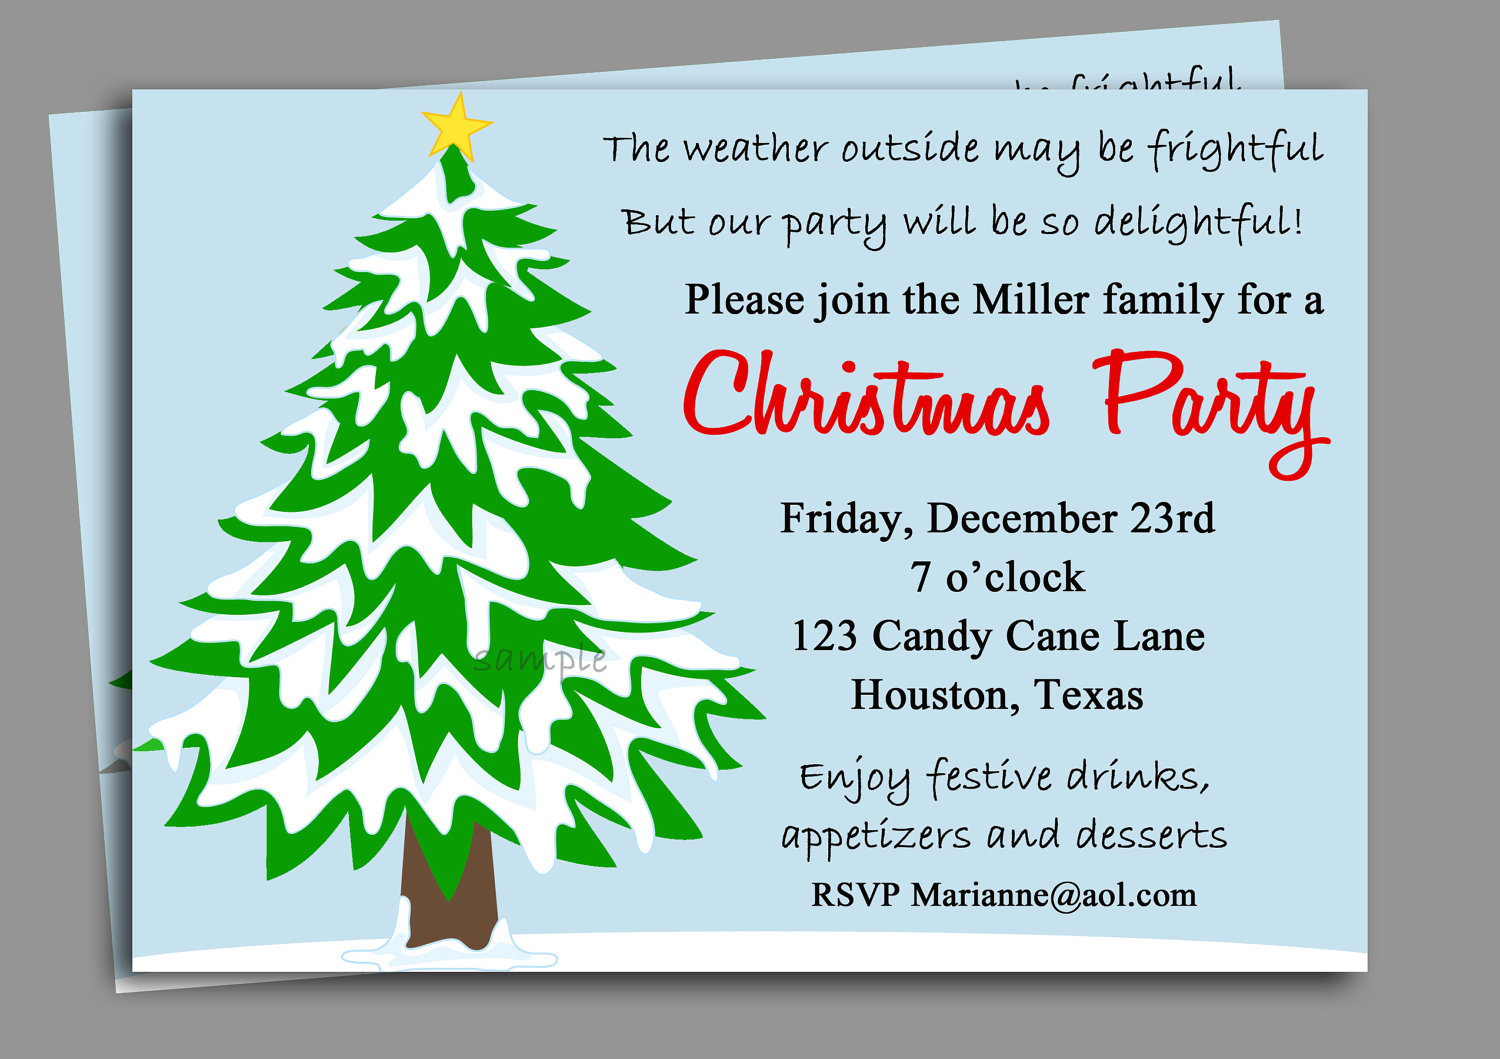 Christmas Party Invitation Poem Funny New Christmas Party